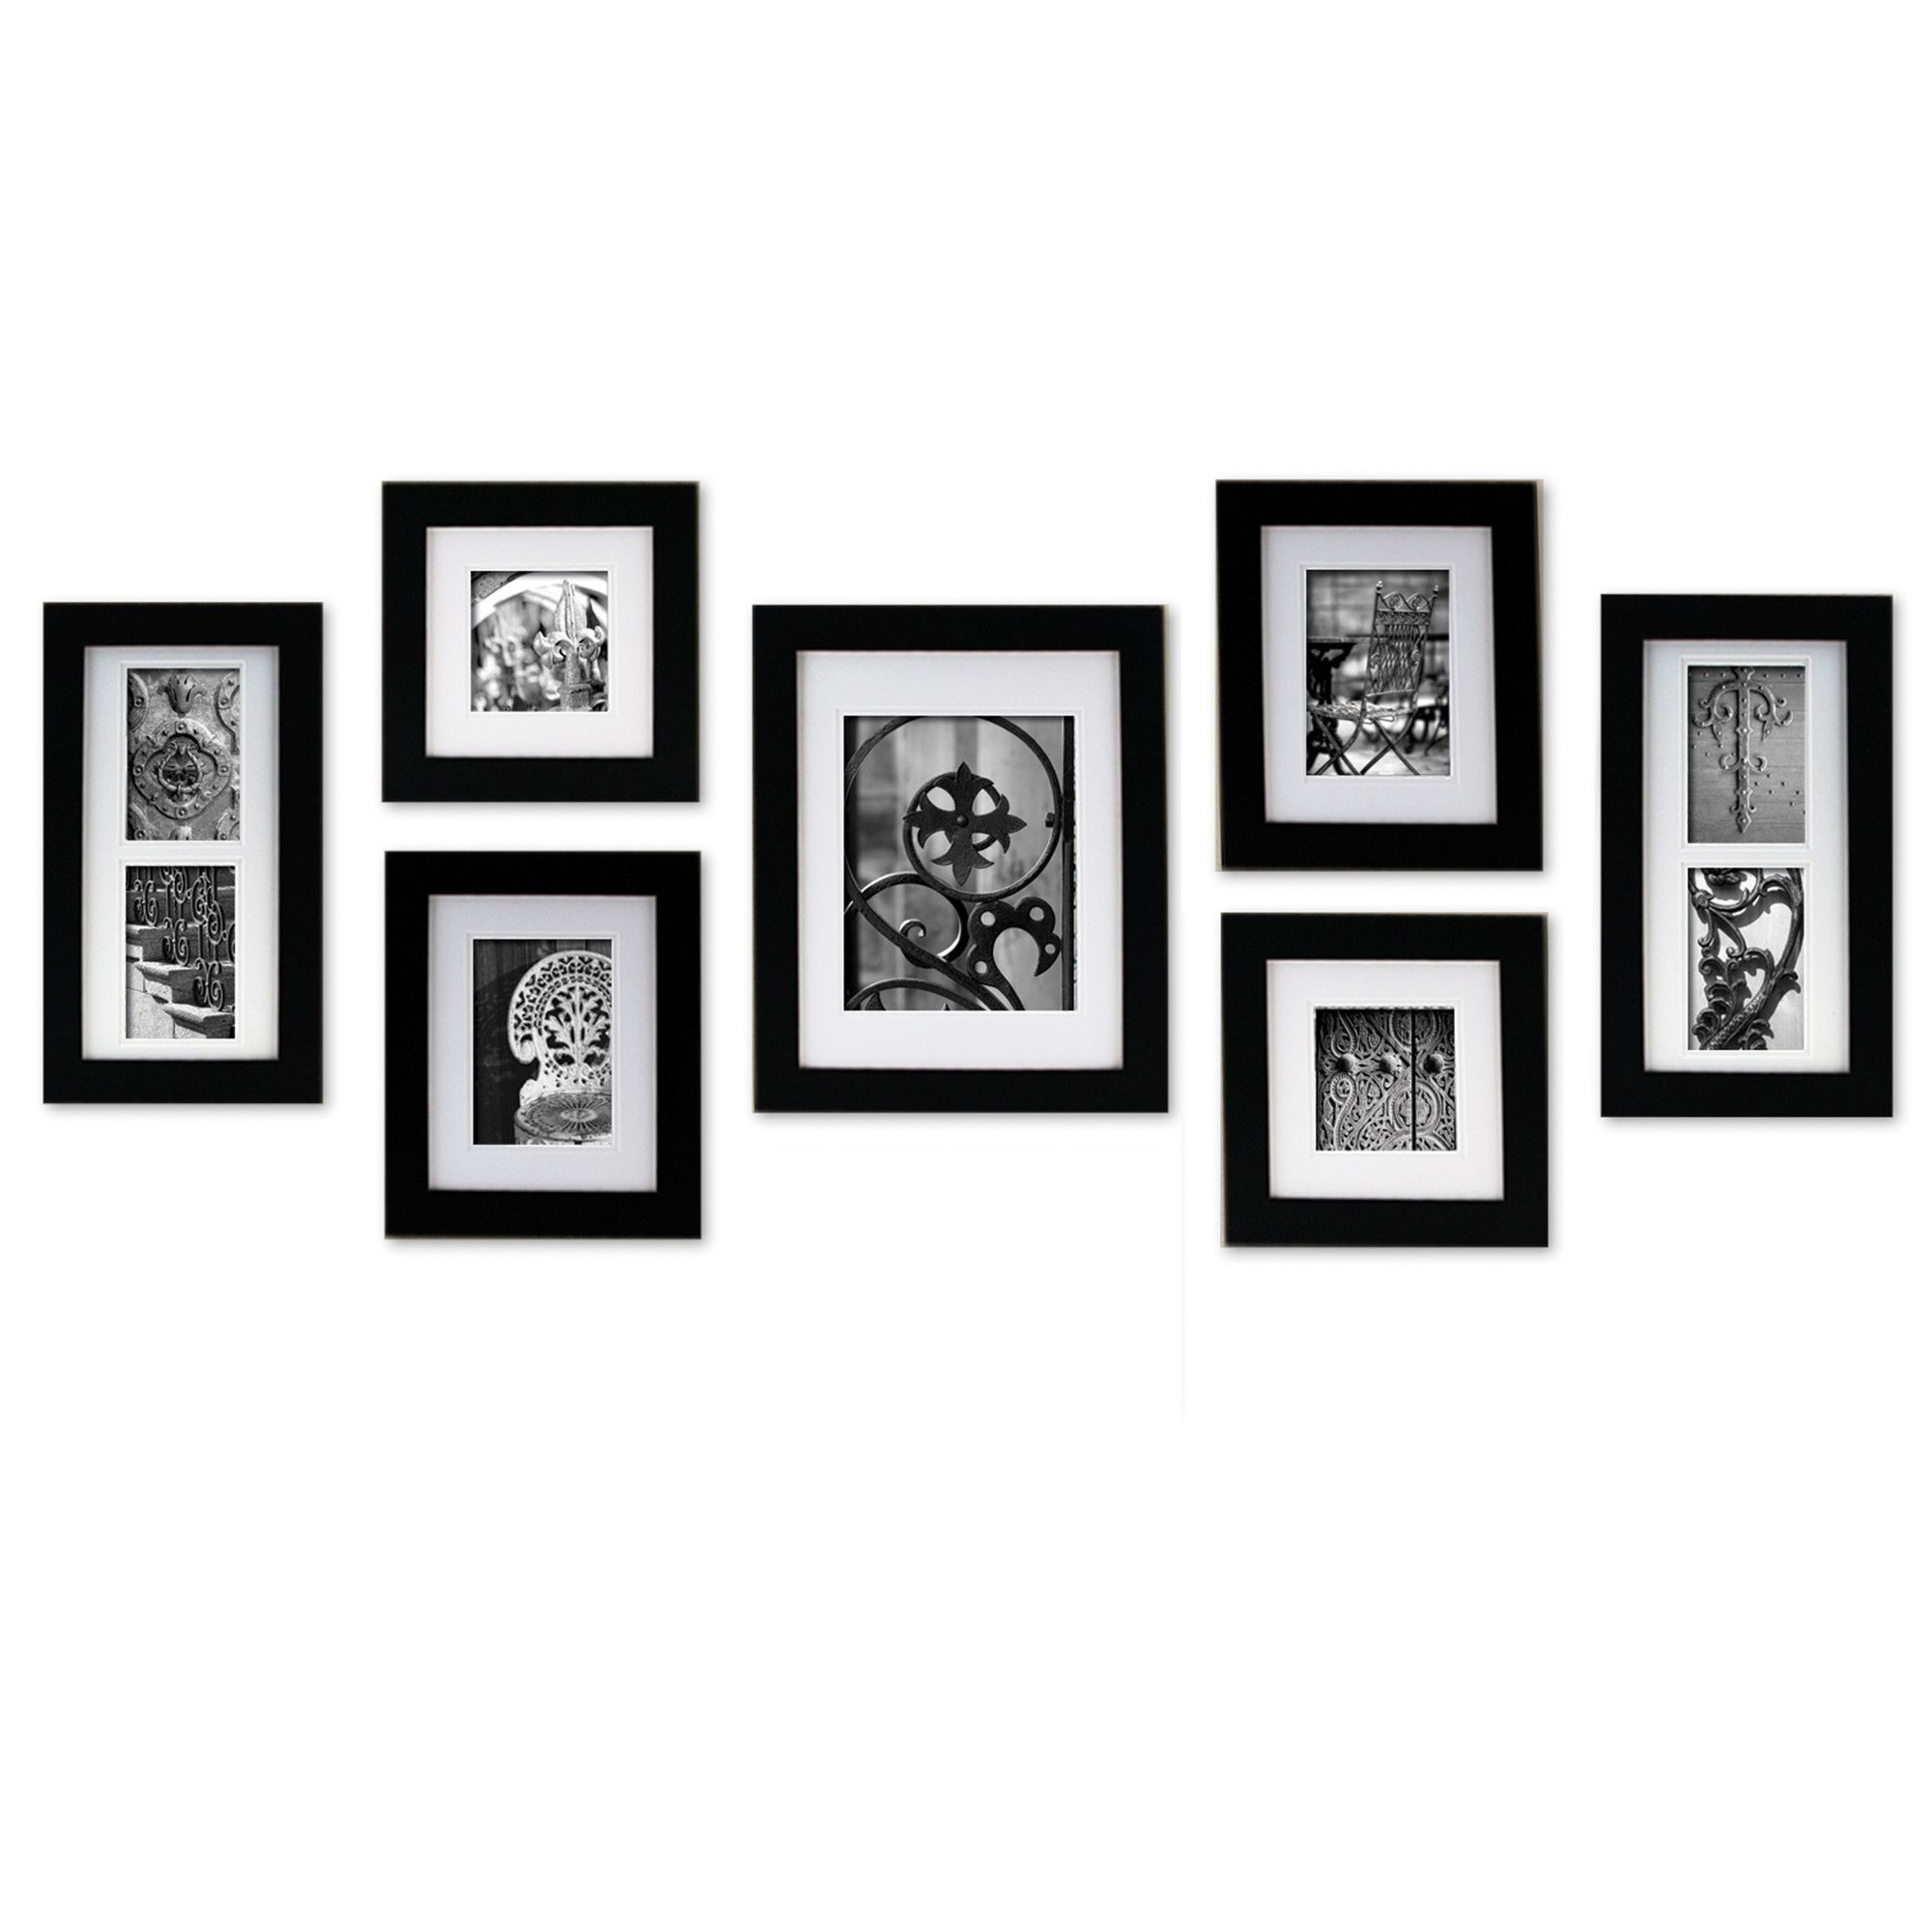 Nielsenbainbridge gallery 7 piece portrait picture frame set nielsenbainbridge gallery 7 piece portrait picture frame set allmodern jeuxipadfo Gallery